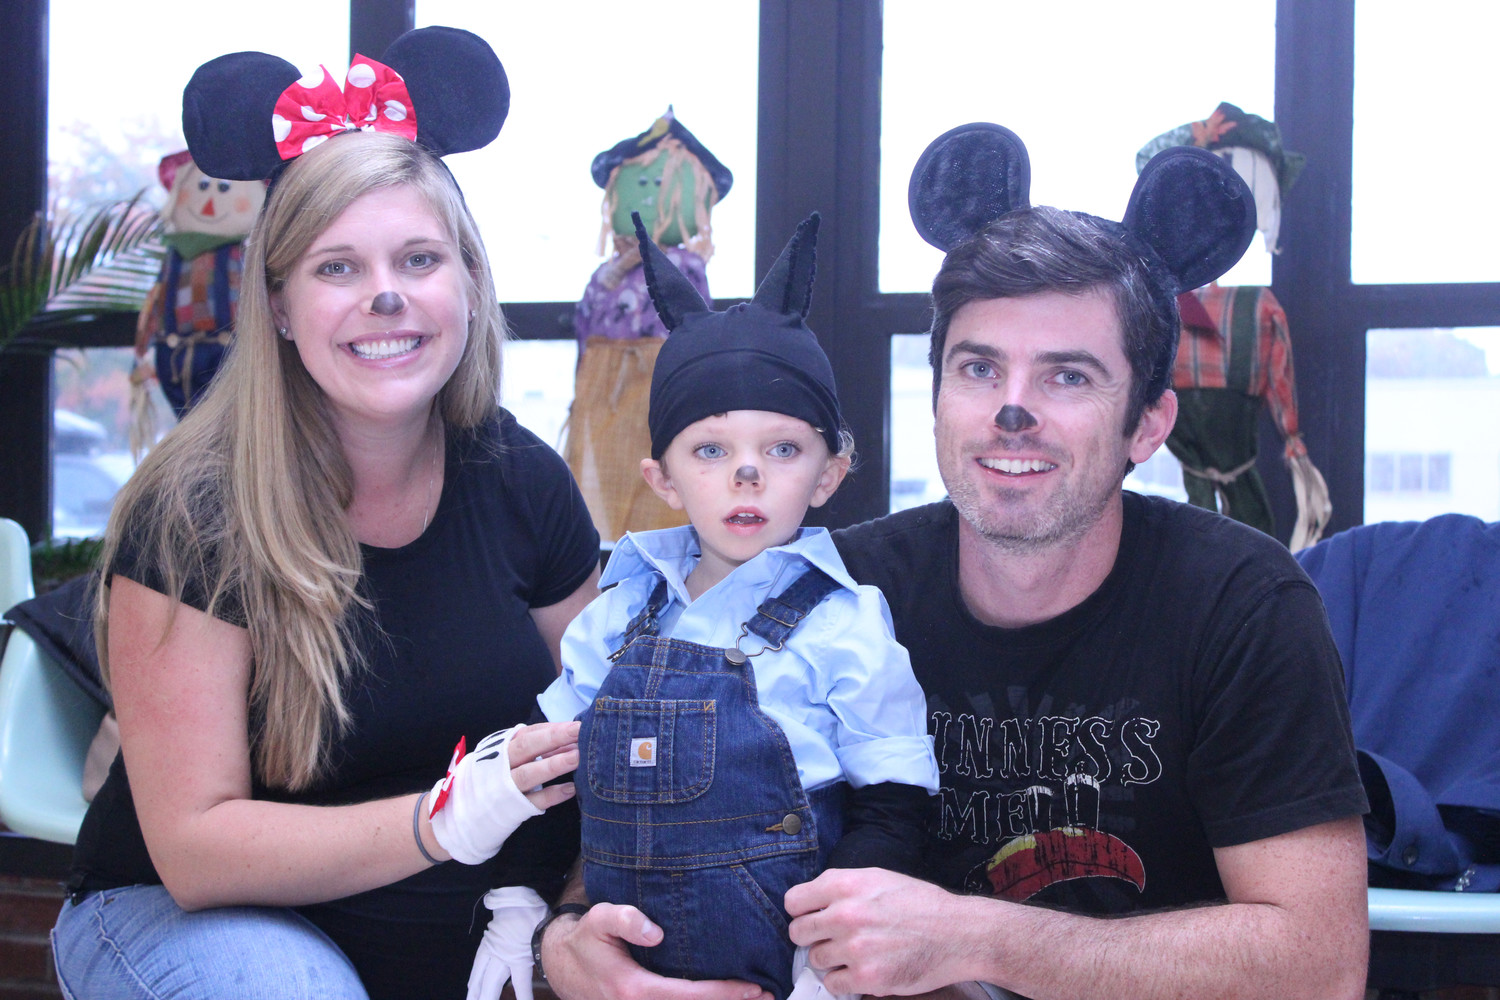 Despite the annual Ragamuffin Parade being cancelled, the Holland family, from left, including Monica, Daniel, 2, and Donal, enjoyed a Halloween party at the Rockville Centre Recreation Center on Oct. 29.